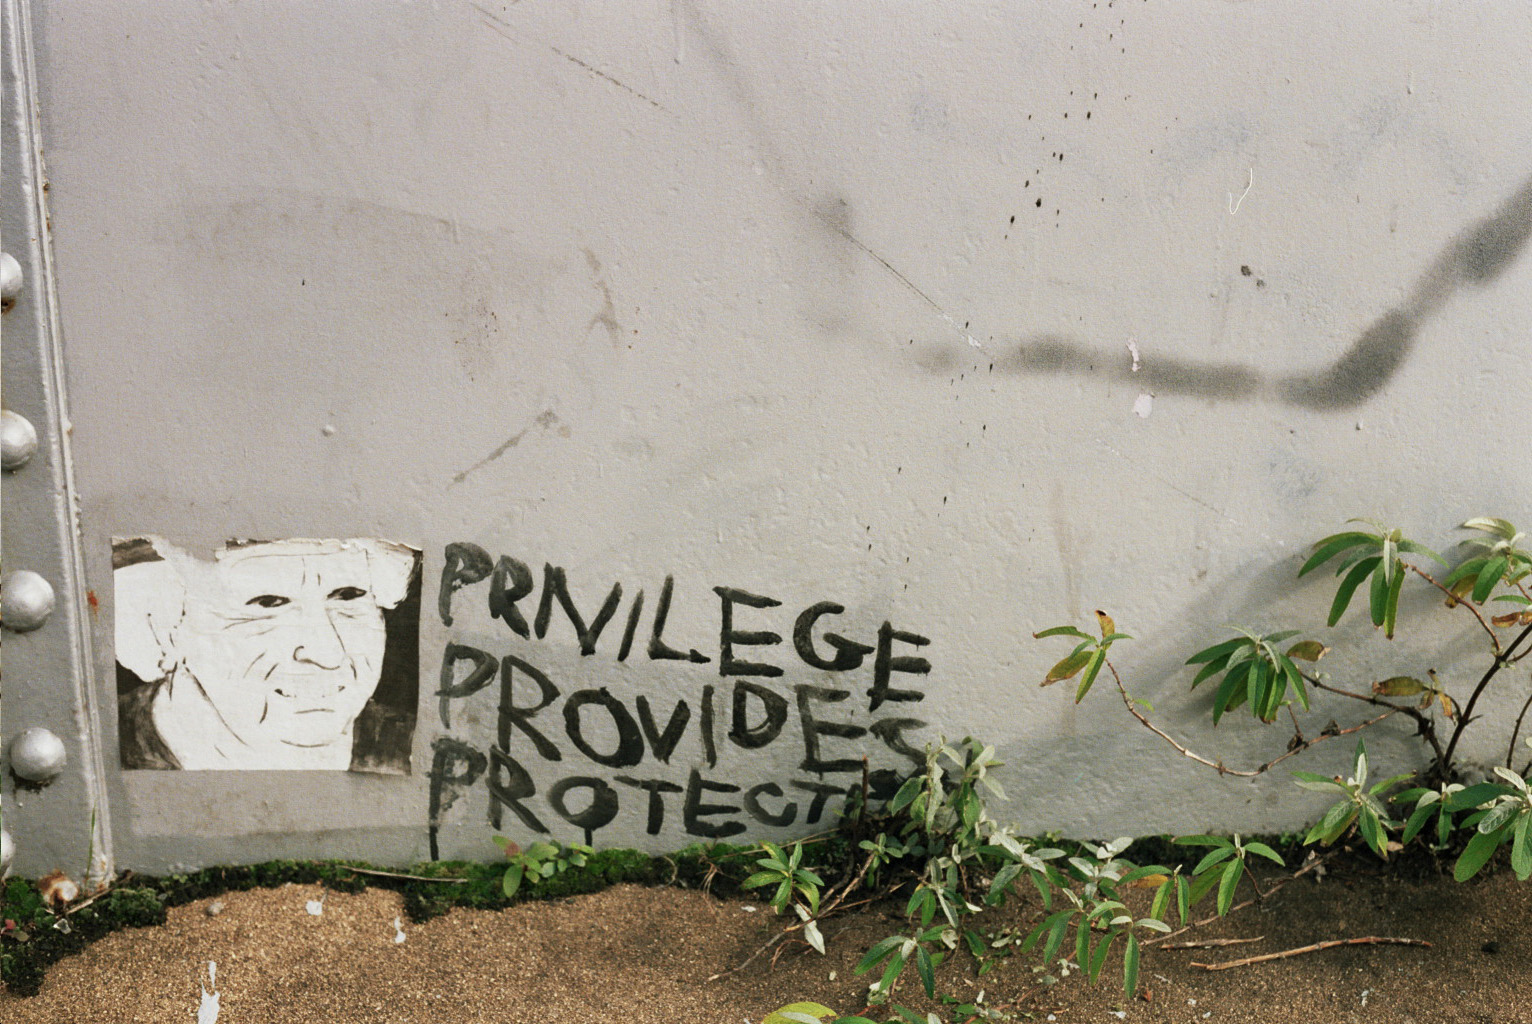 At the bottom of a wall, three words are painted: privilege provides (+) protects